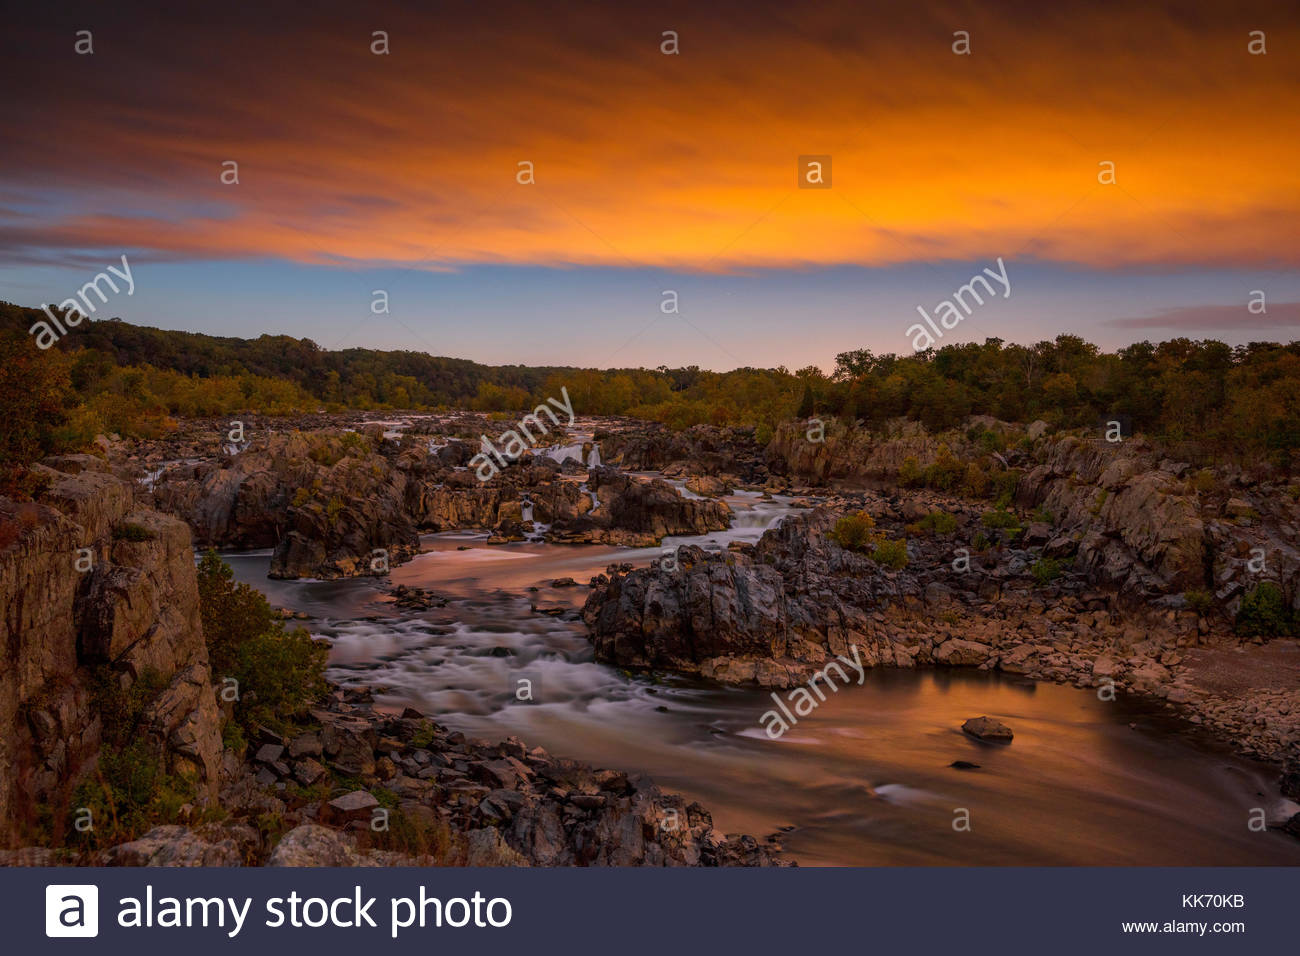 A fiery sunset colors the sky over the Great Falls of the Potomac River, located in Great Falls Park, Virginia. - Stock Image